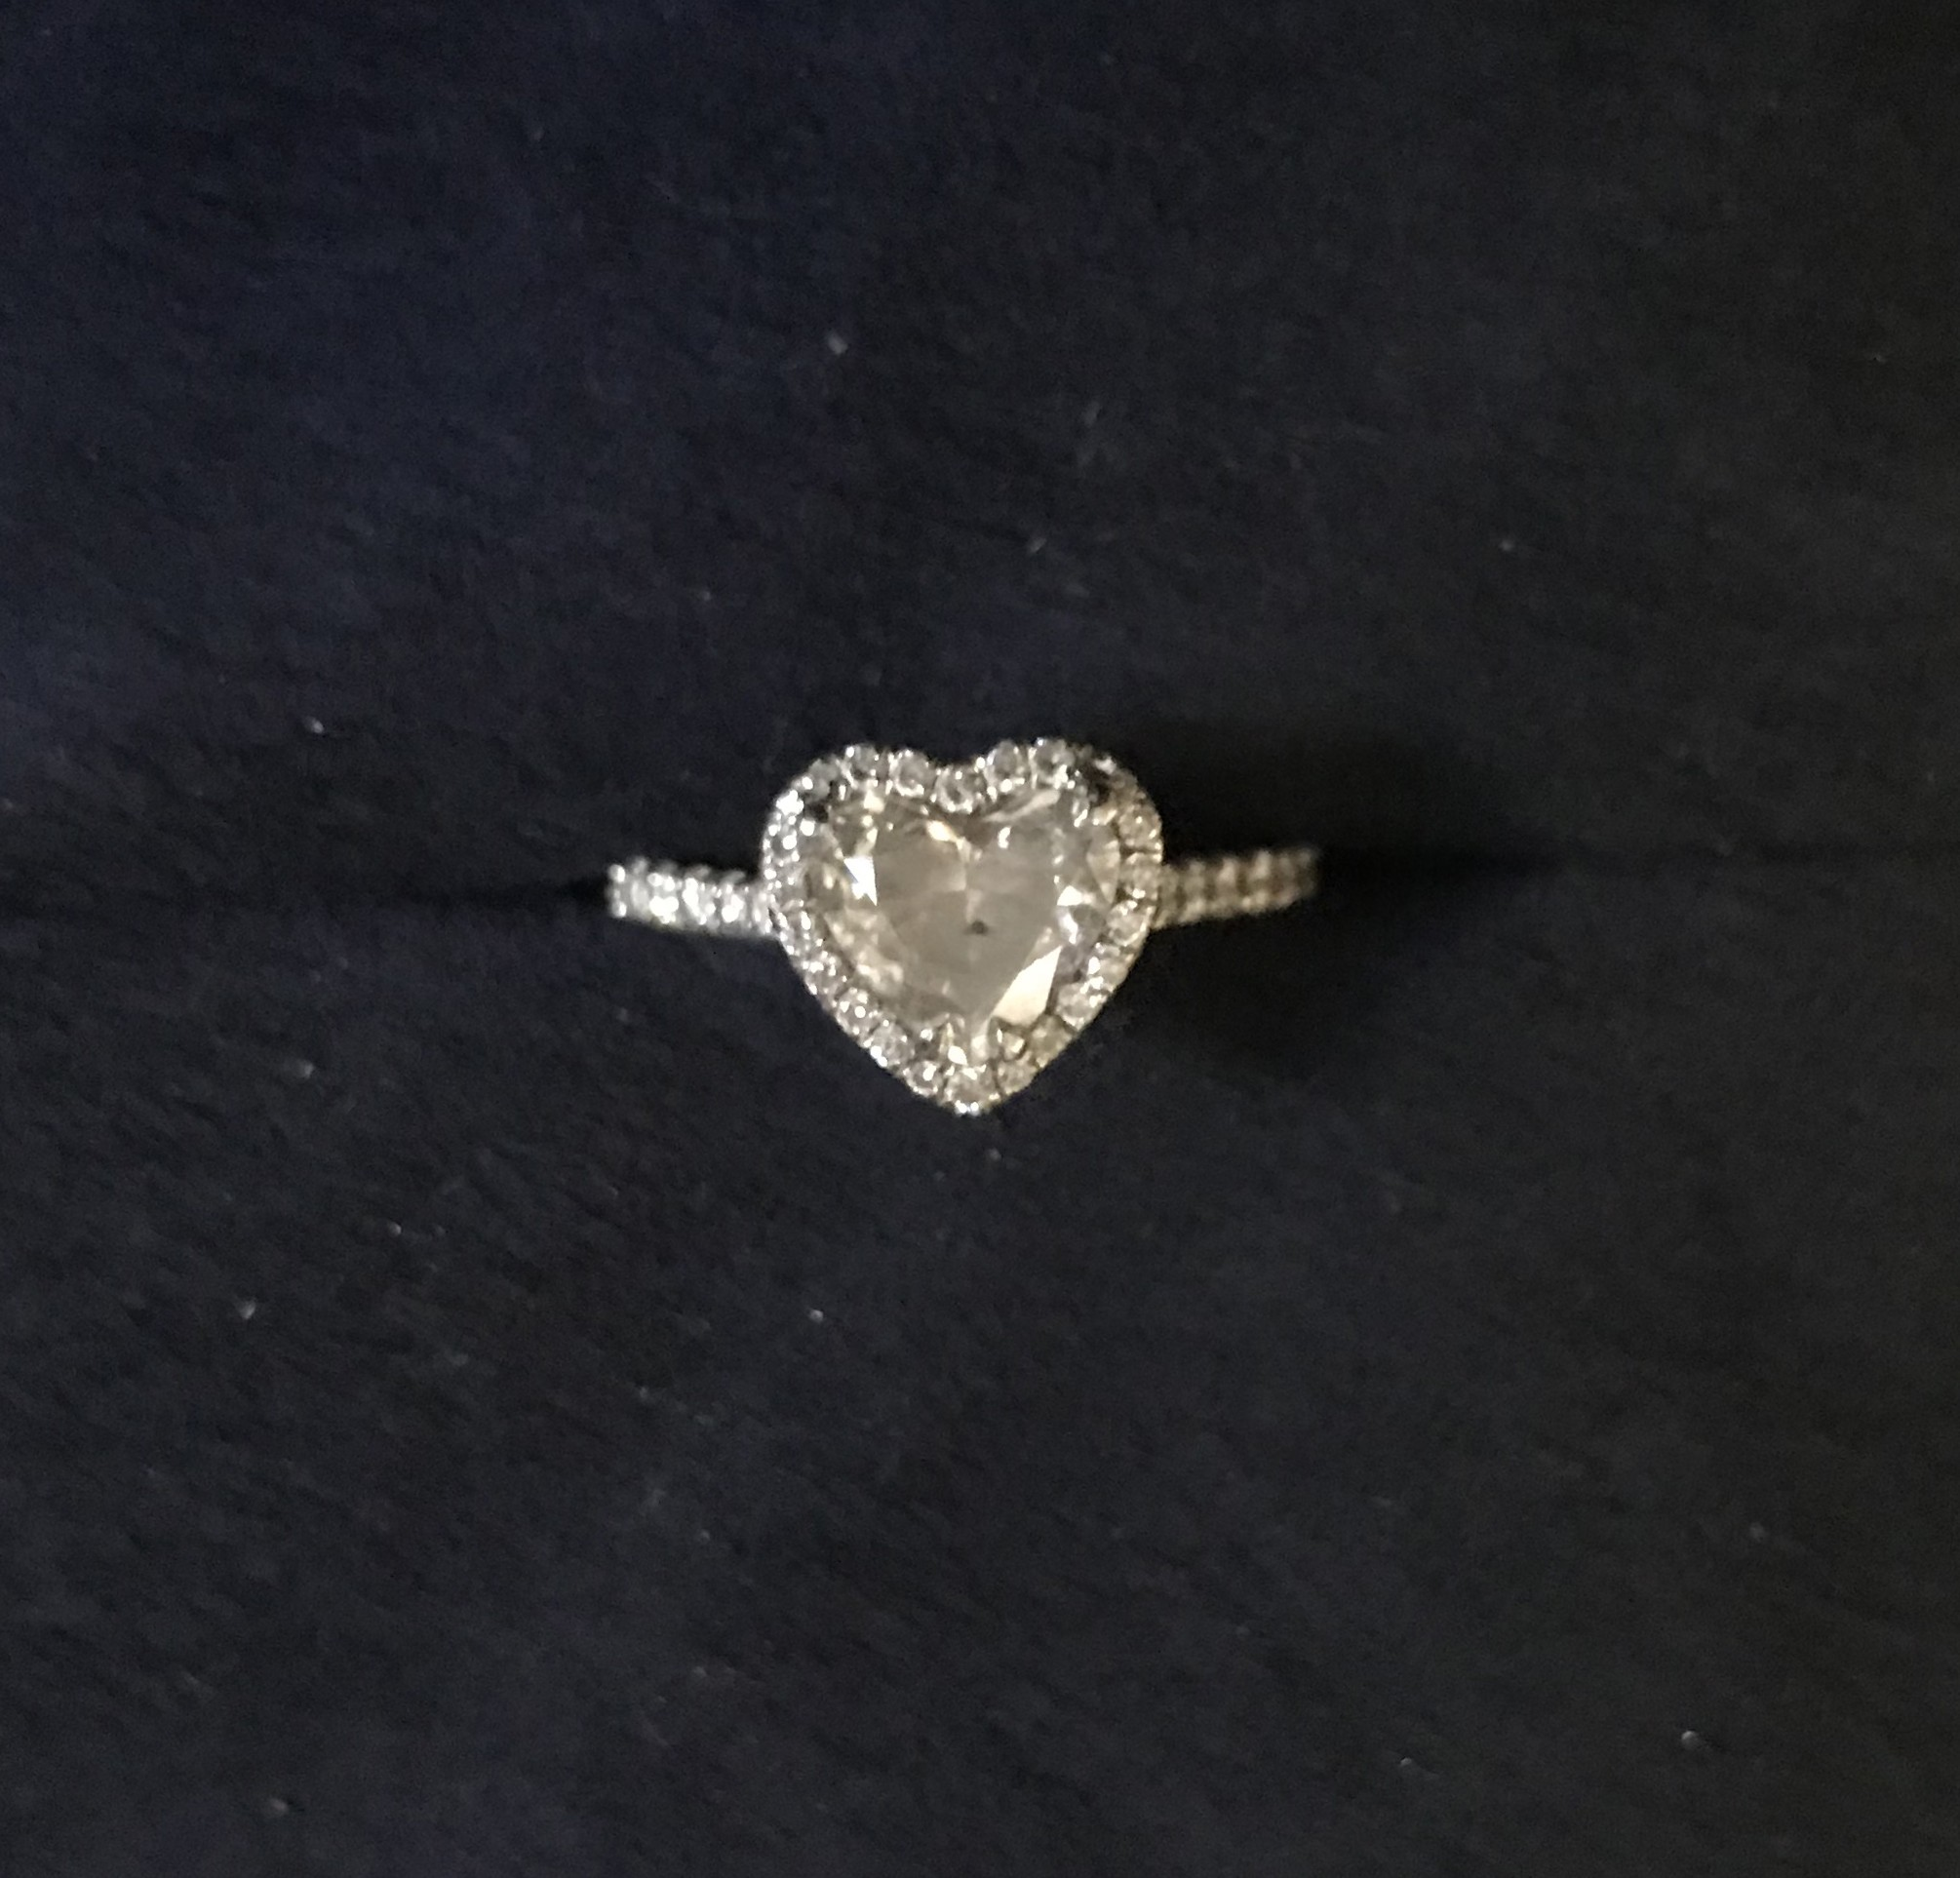 1.5 carat heart shape engagement ring